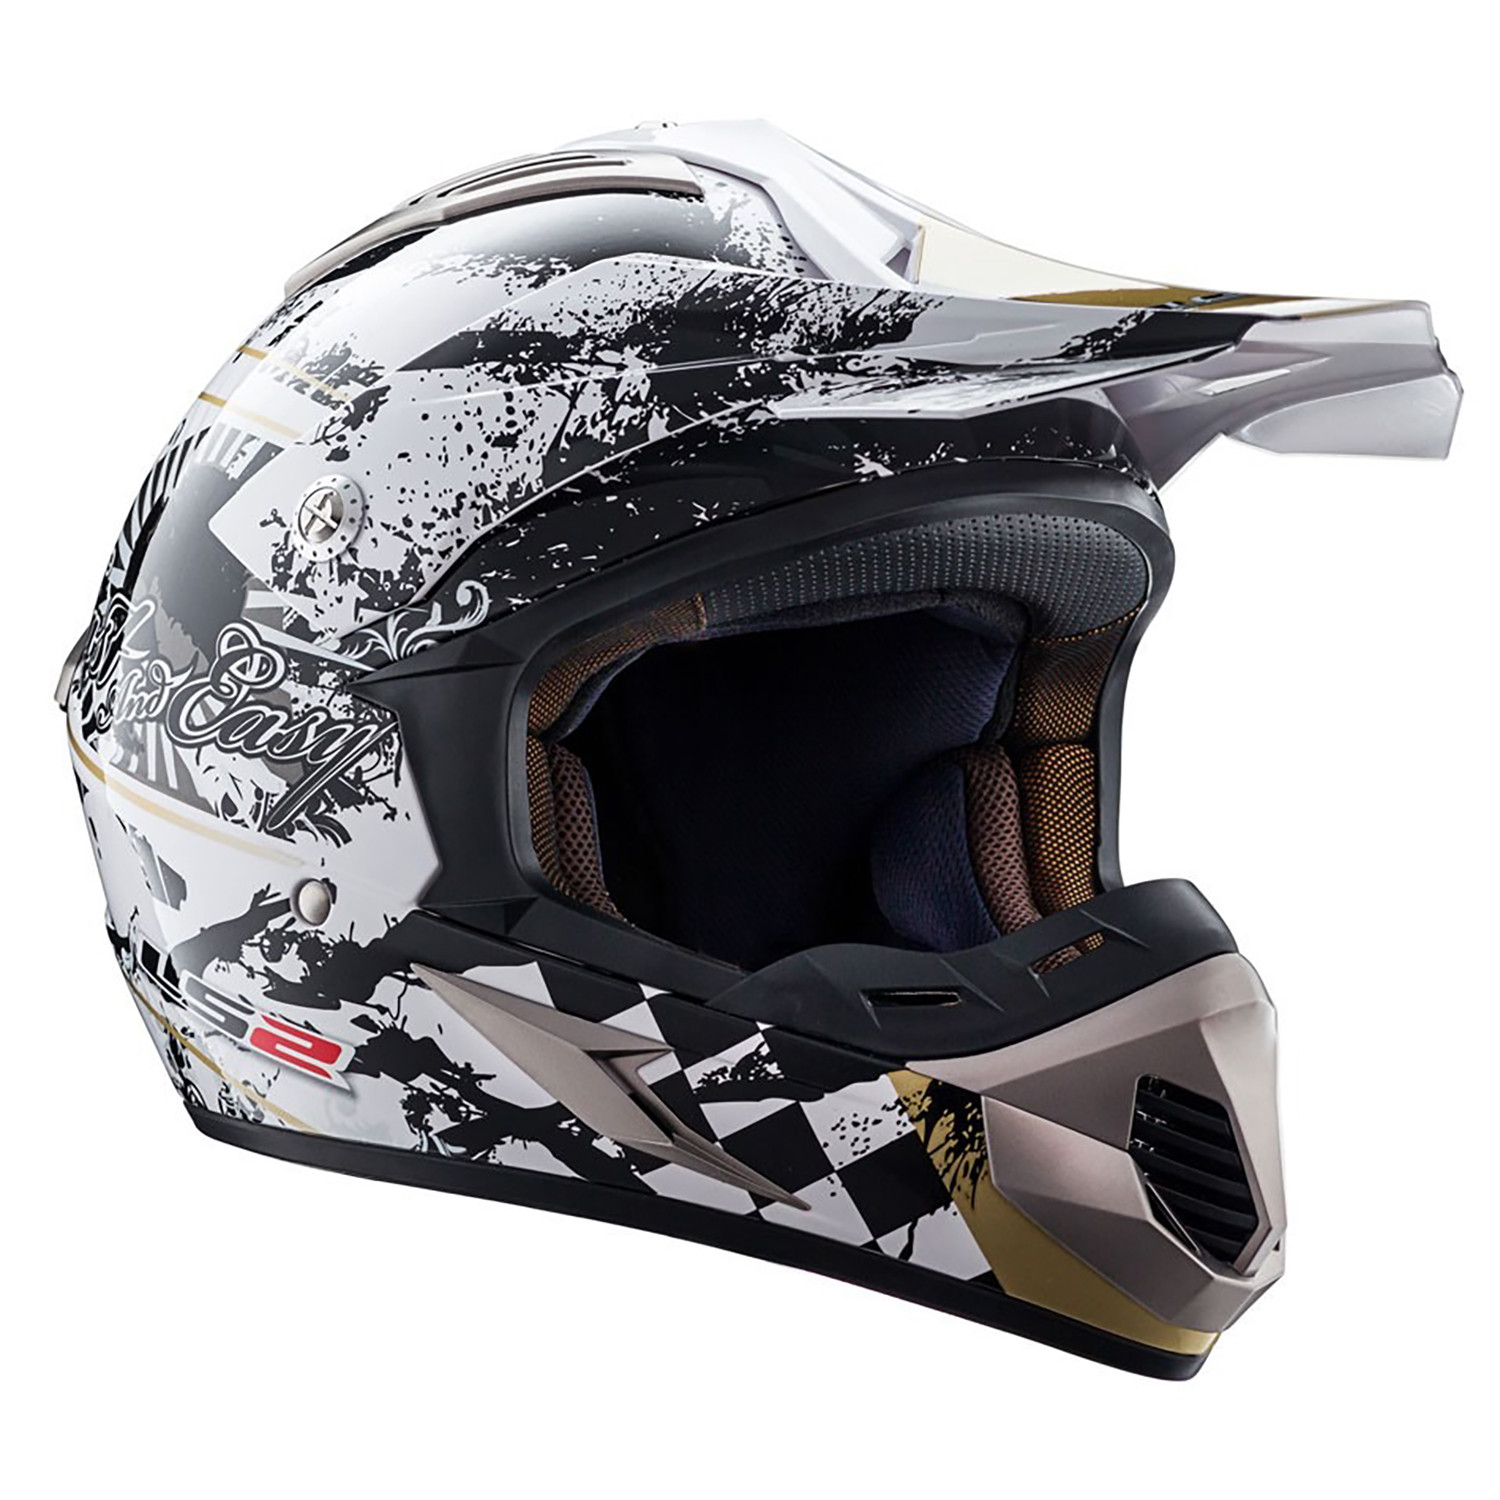 Casco Cross LS2 MX 433 Desperado Gloss